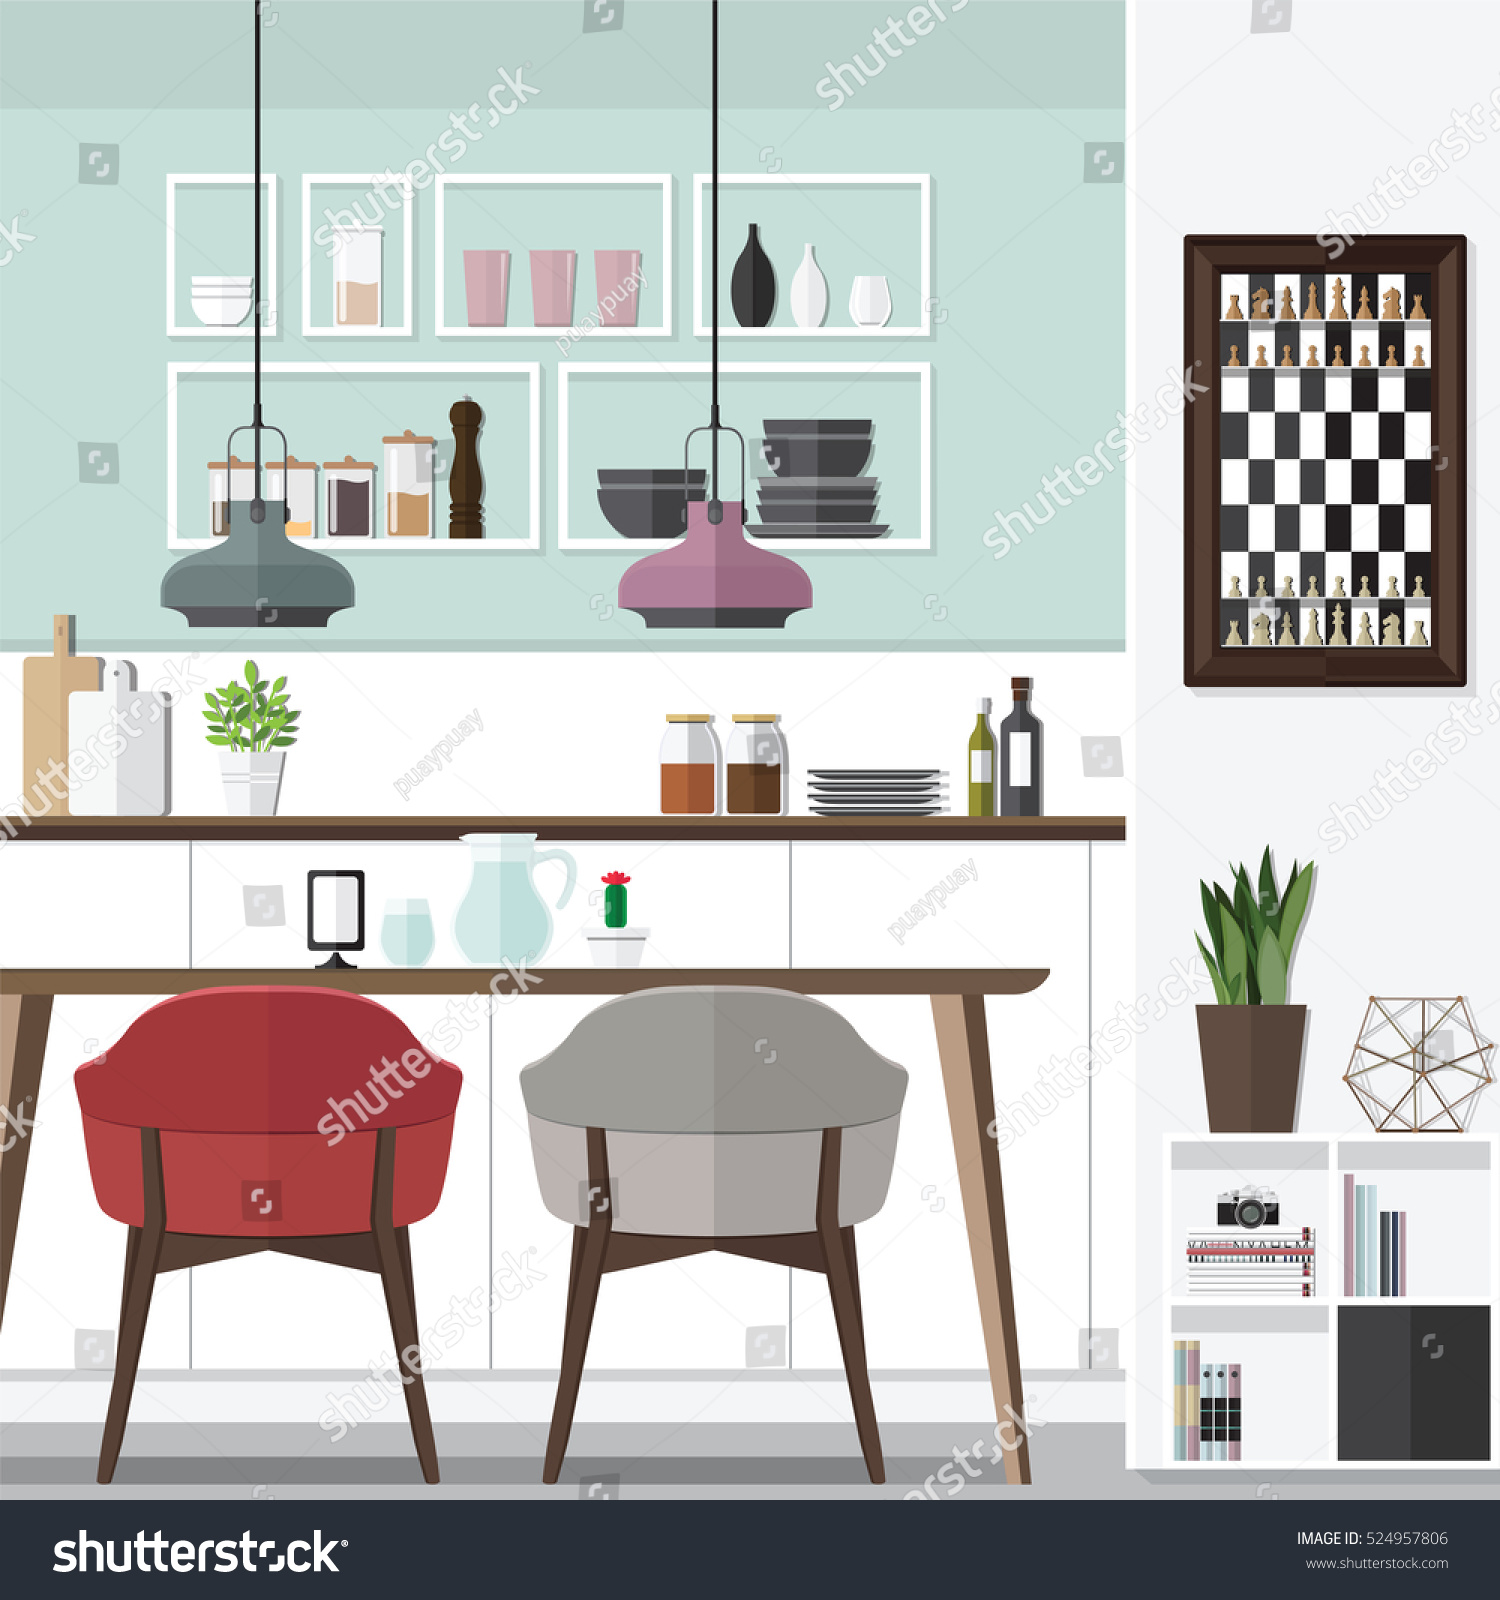 Kitchen furniture set cozy room interior stock vector for Kitchen set vector